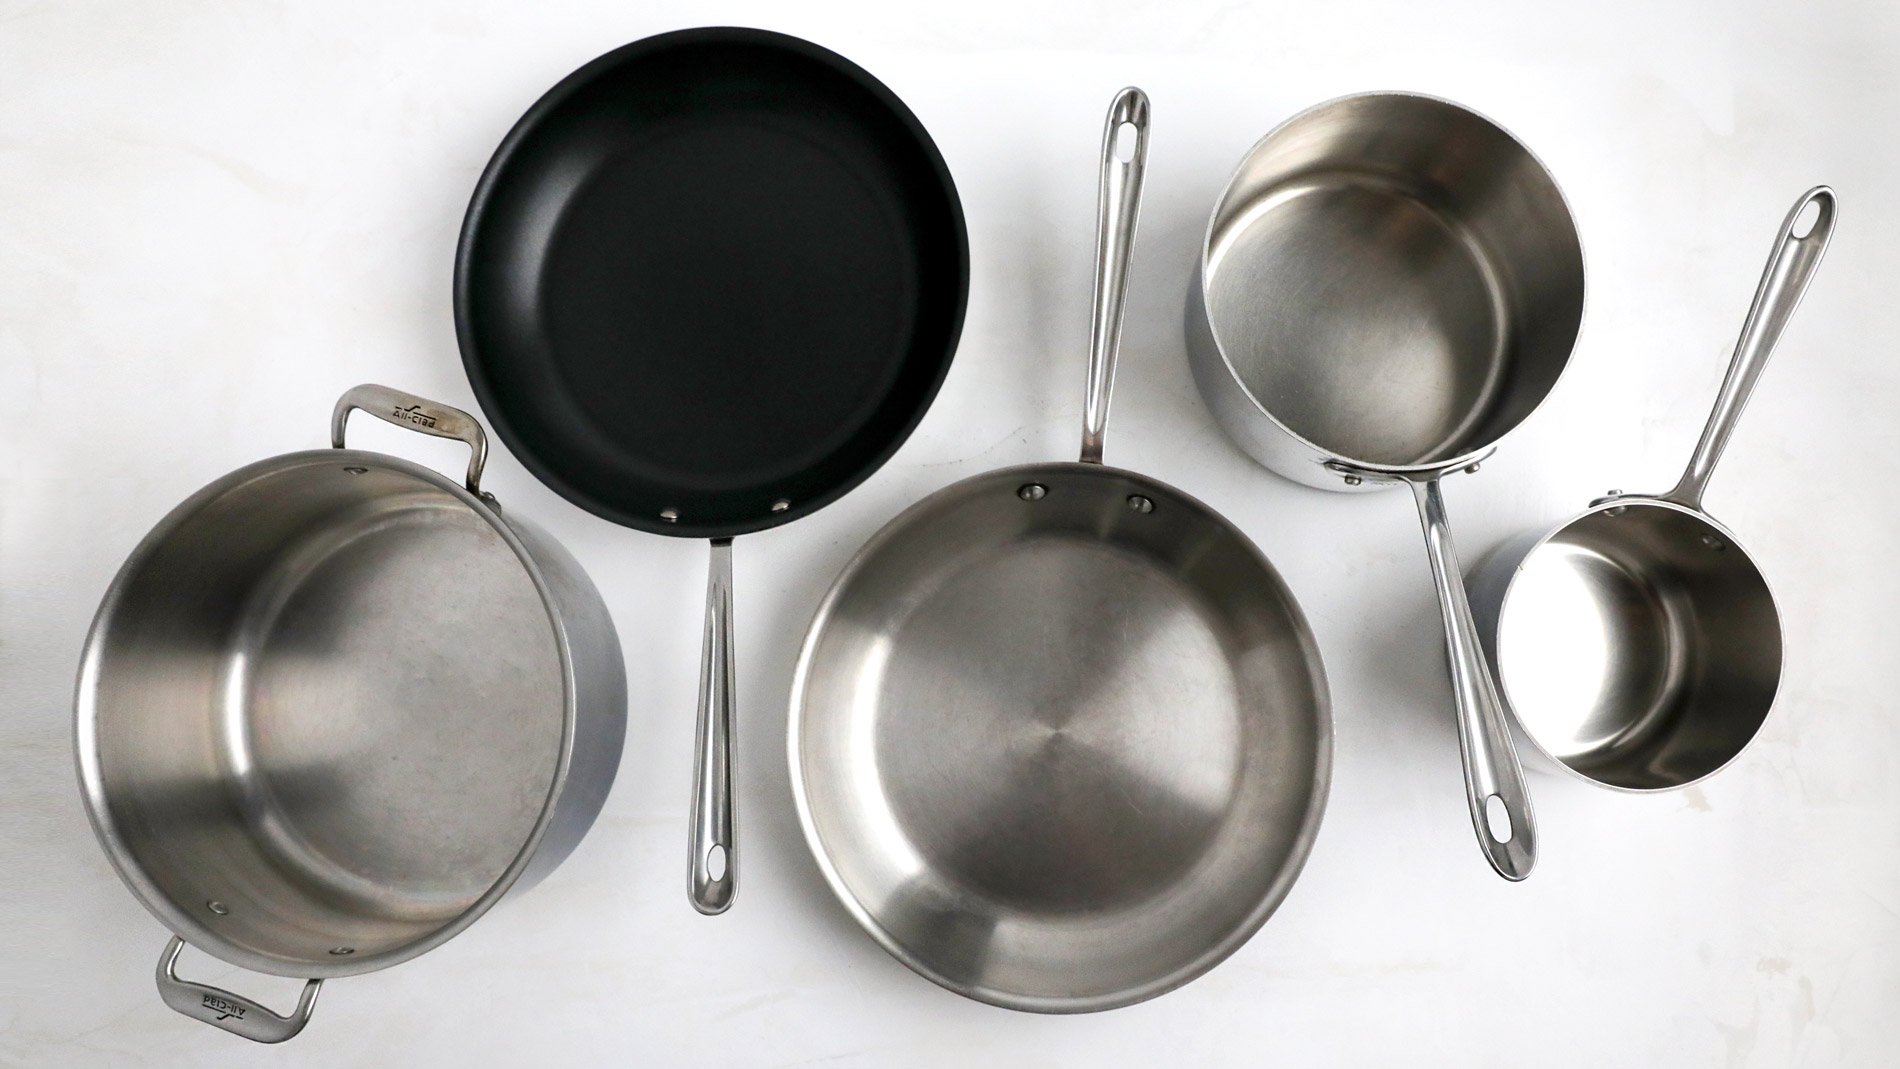 Test Kitchen Pots and Pans